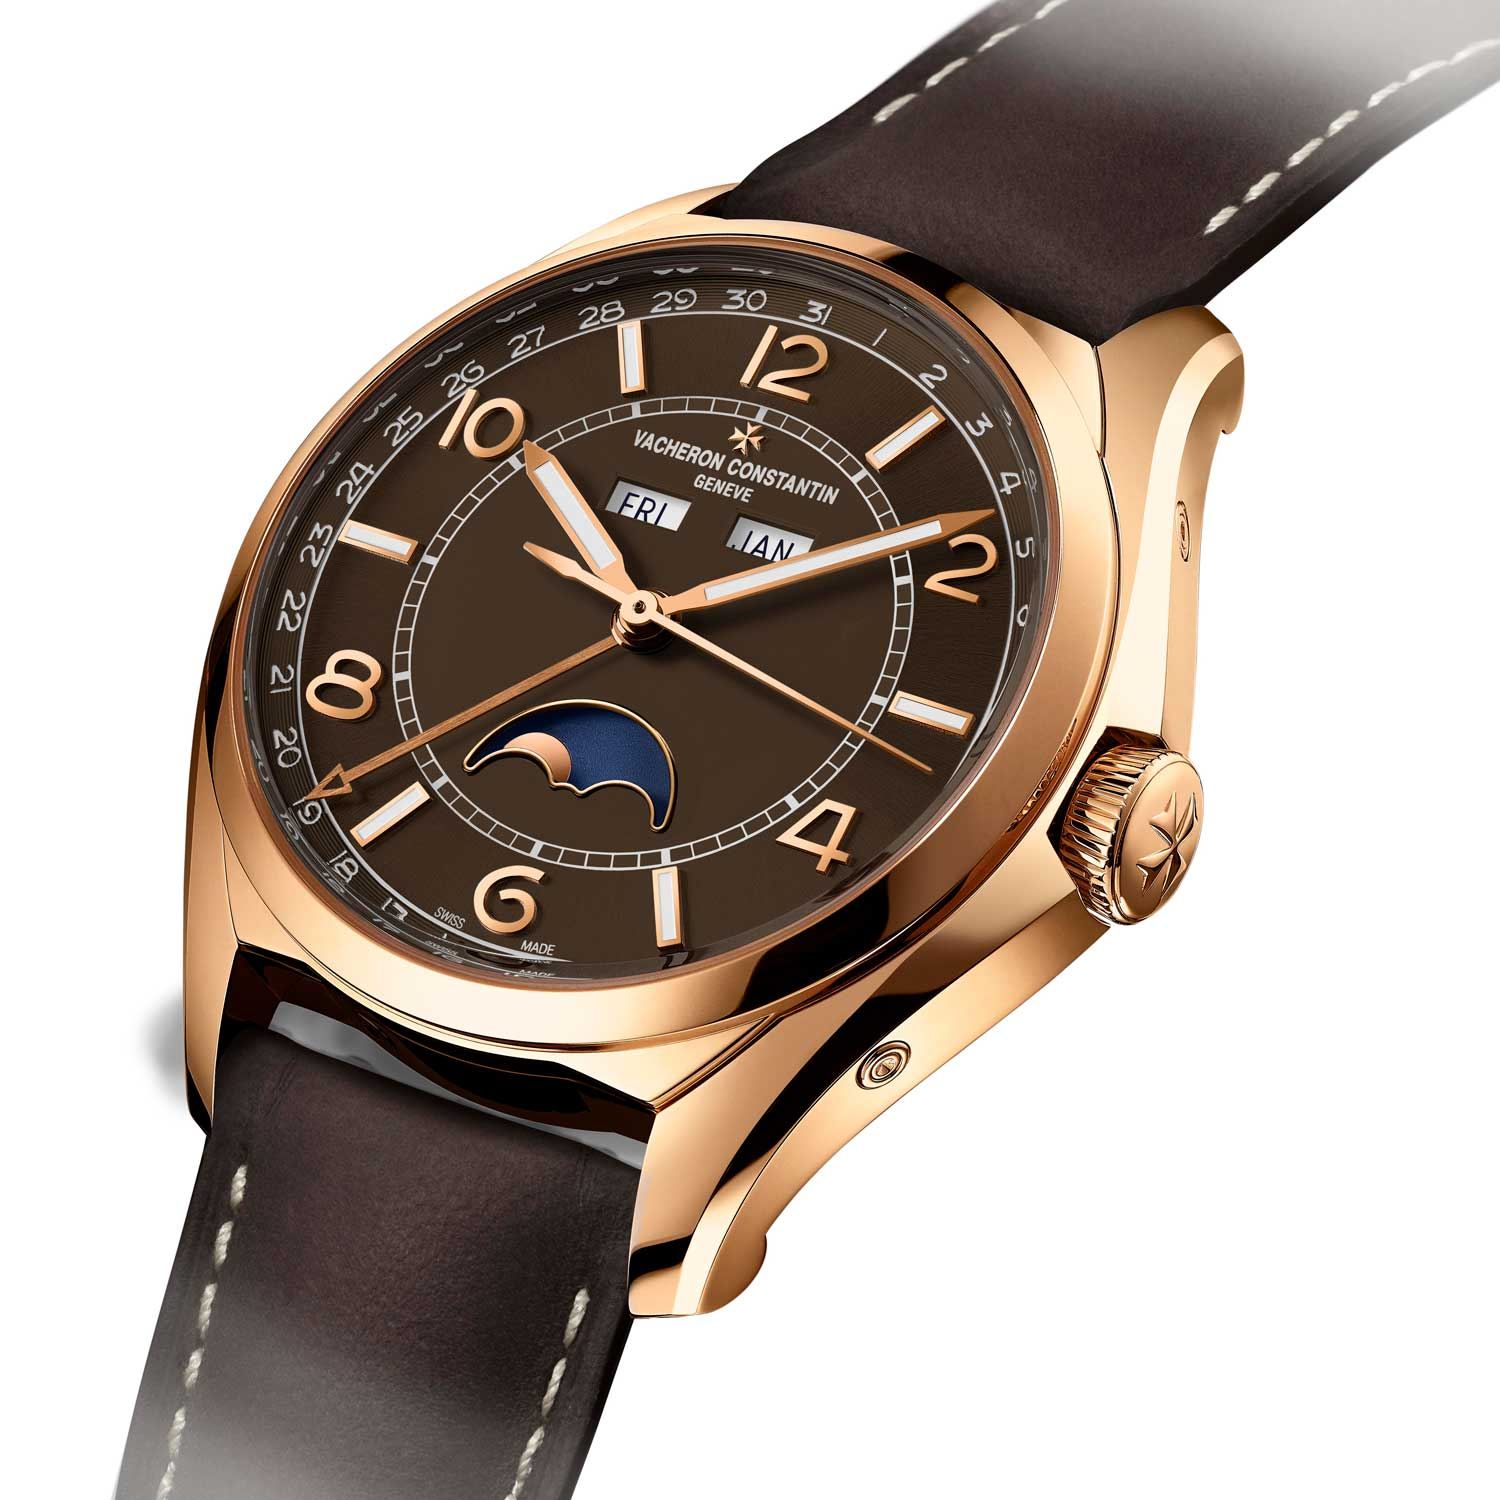 The new Fiftysix models bear sector dials with different surface finishes.